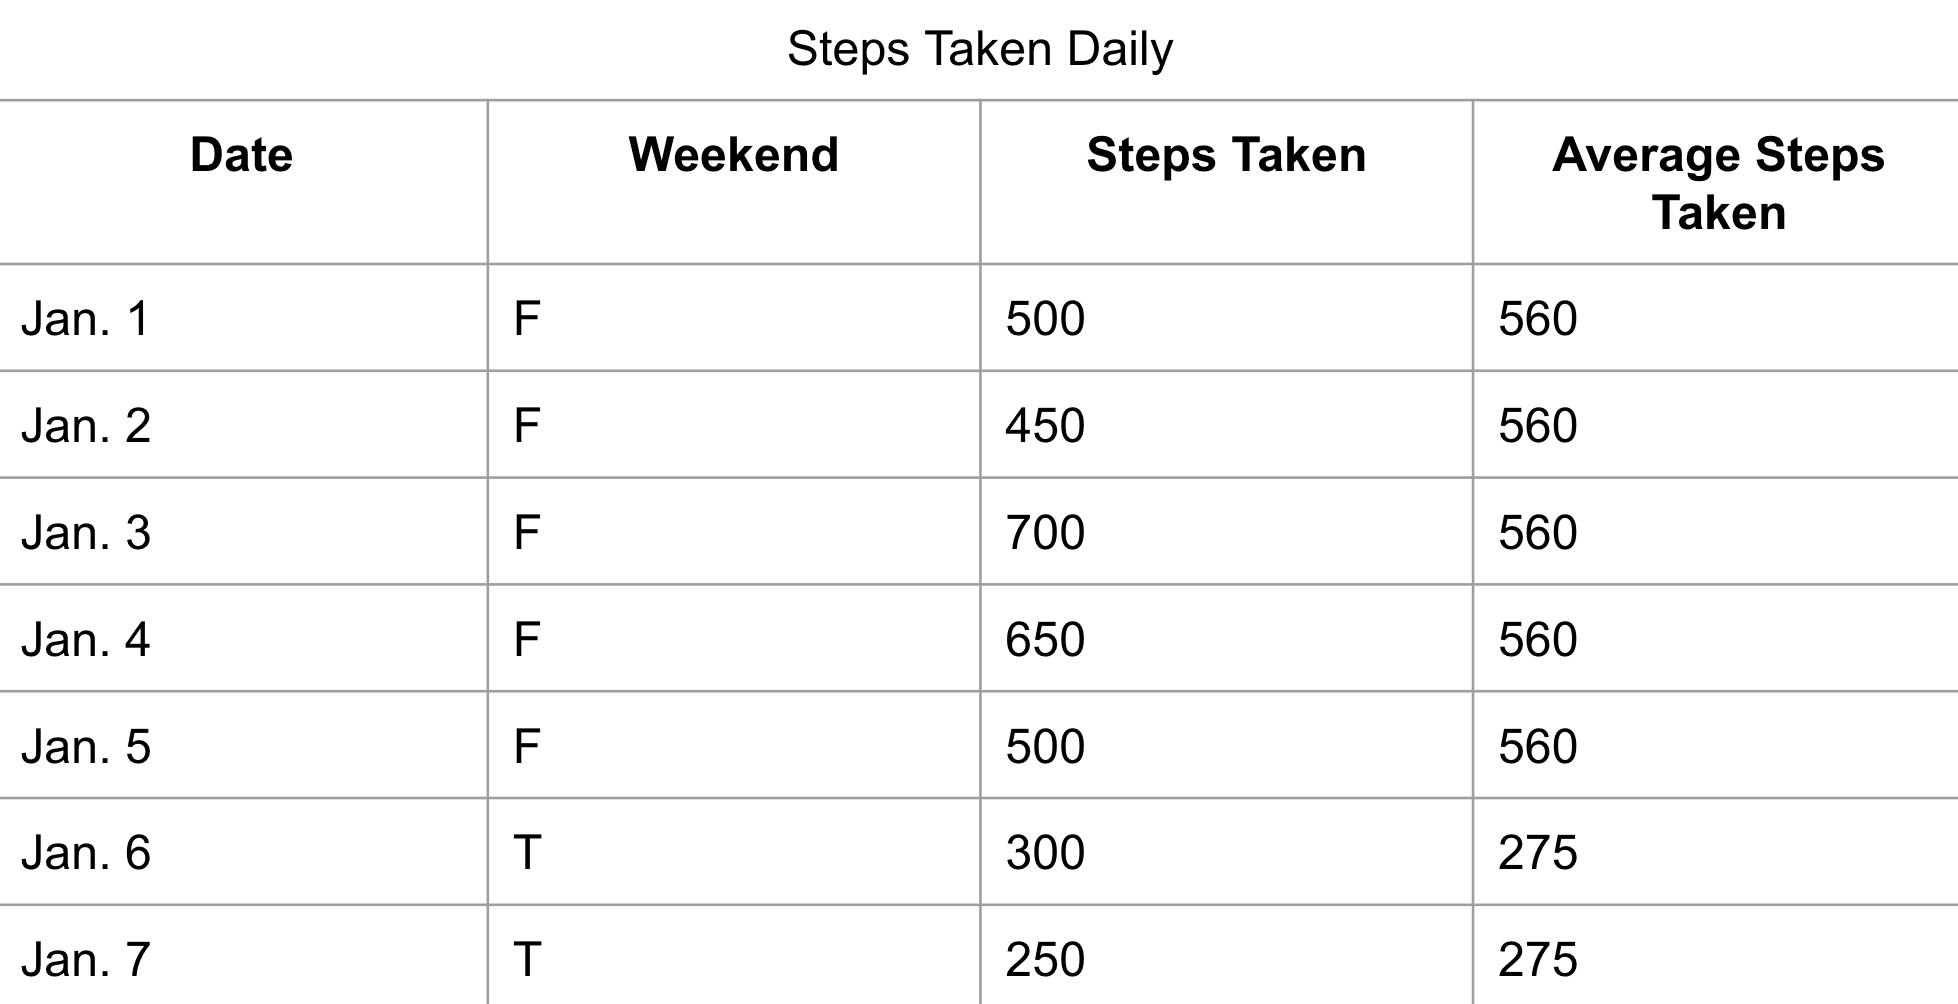 Partitioning the steps taken running average table by weekend or weekday